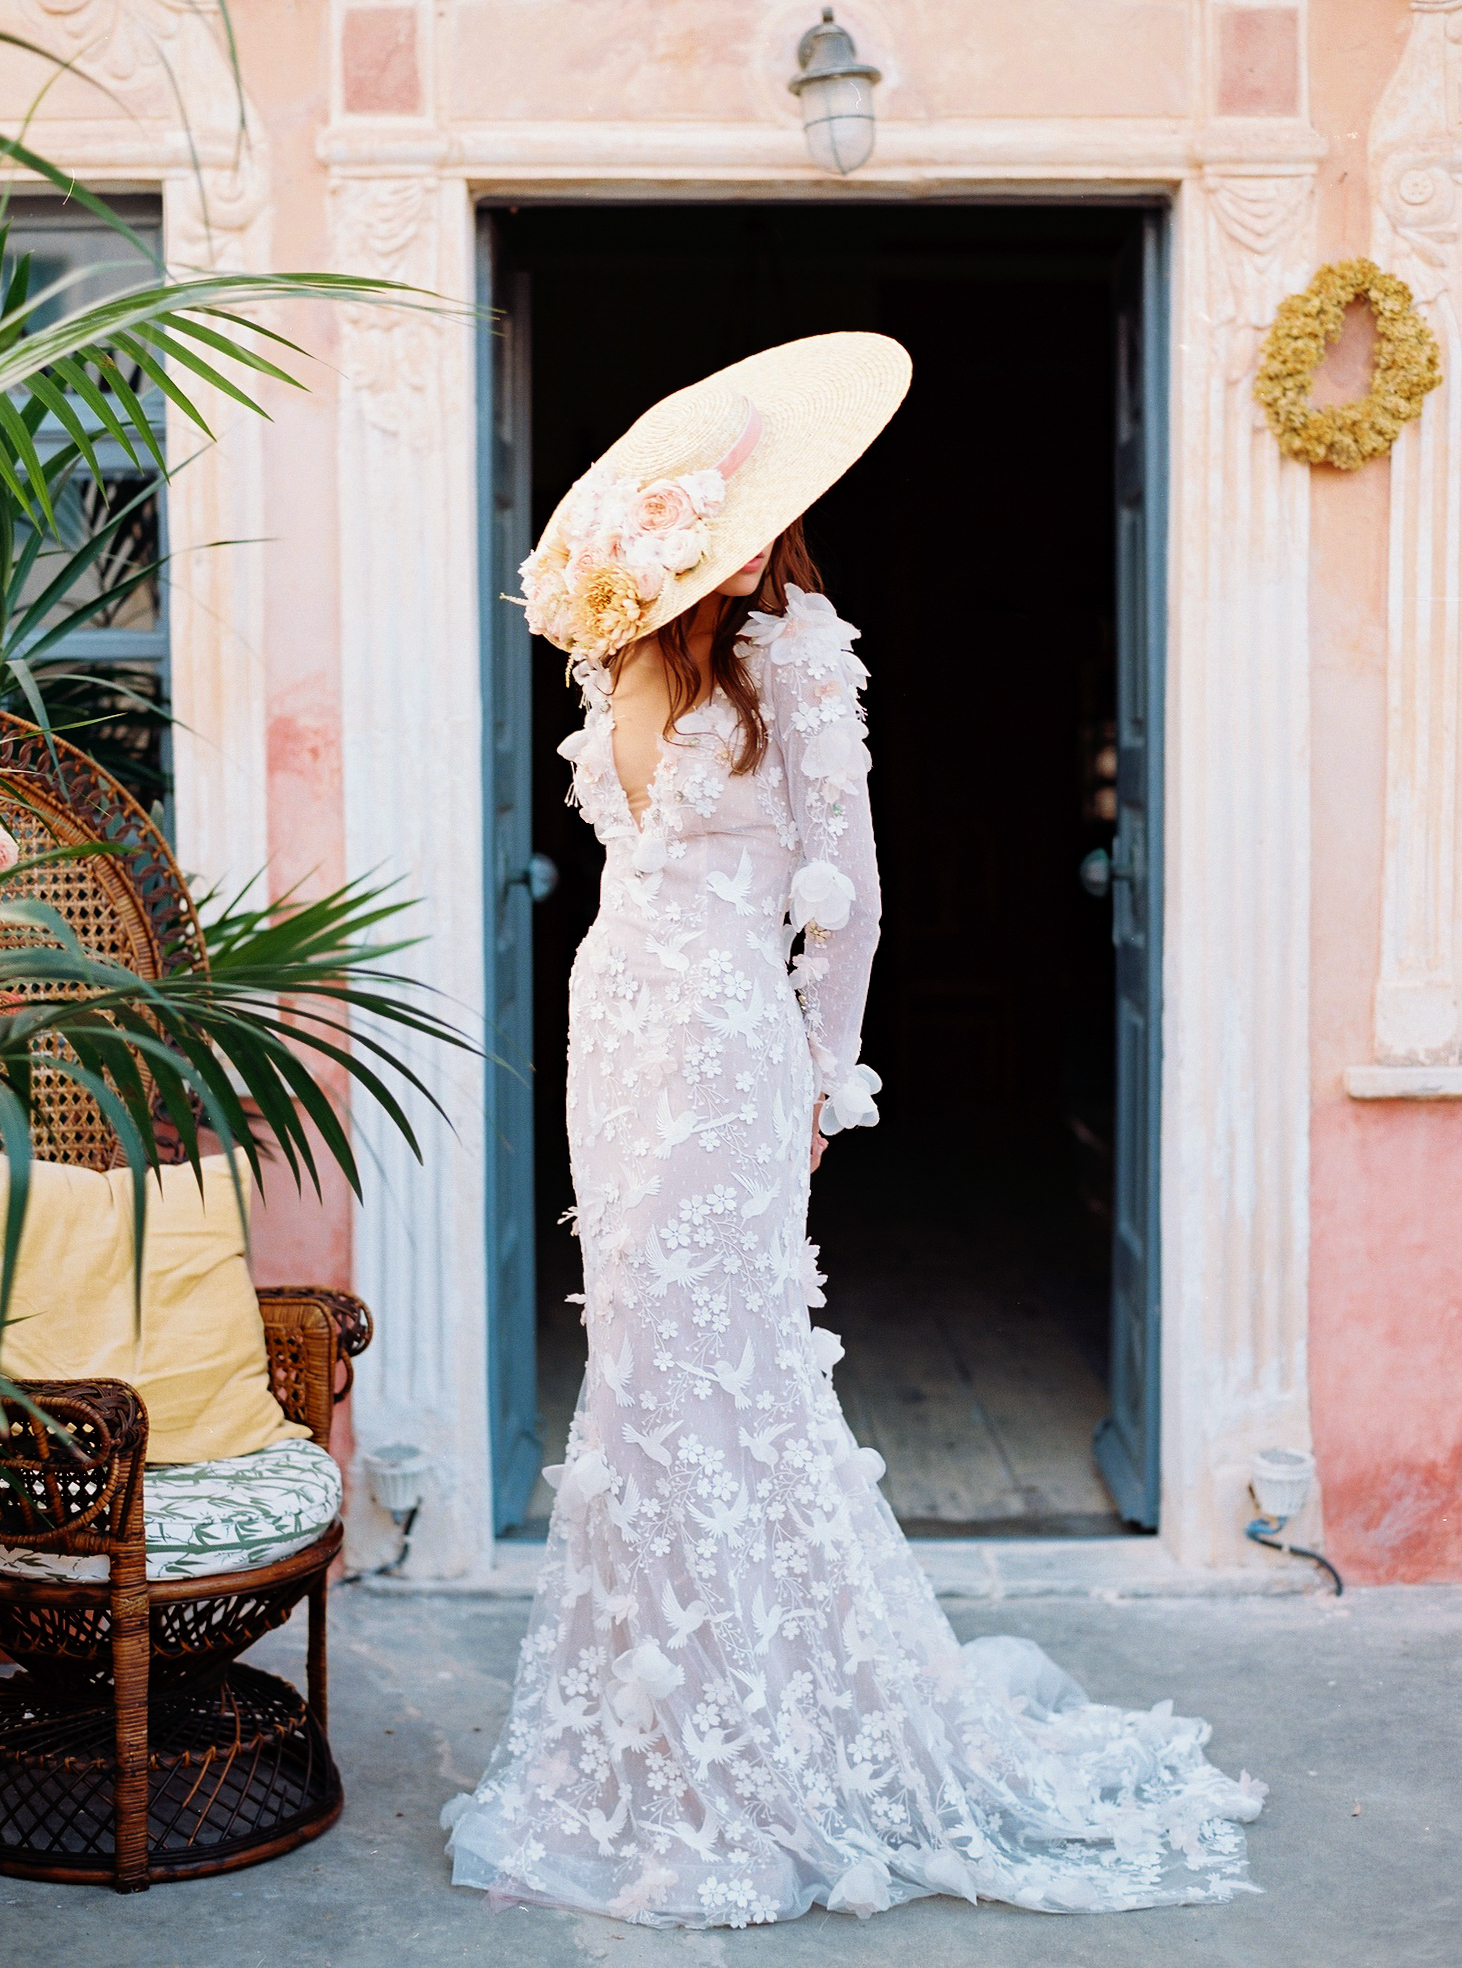 bride wearing large hat and floral dress